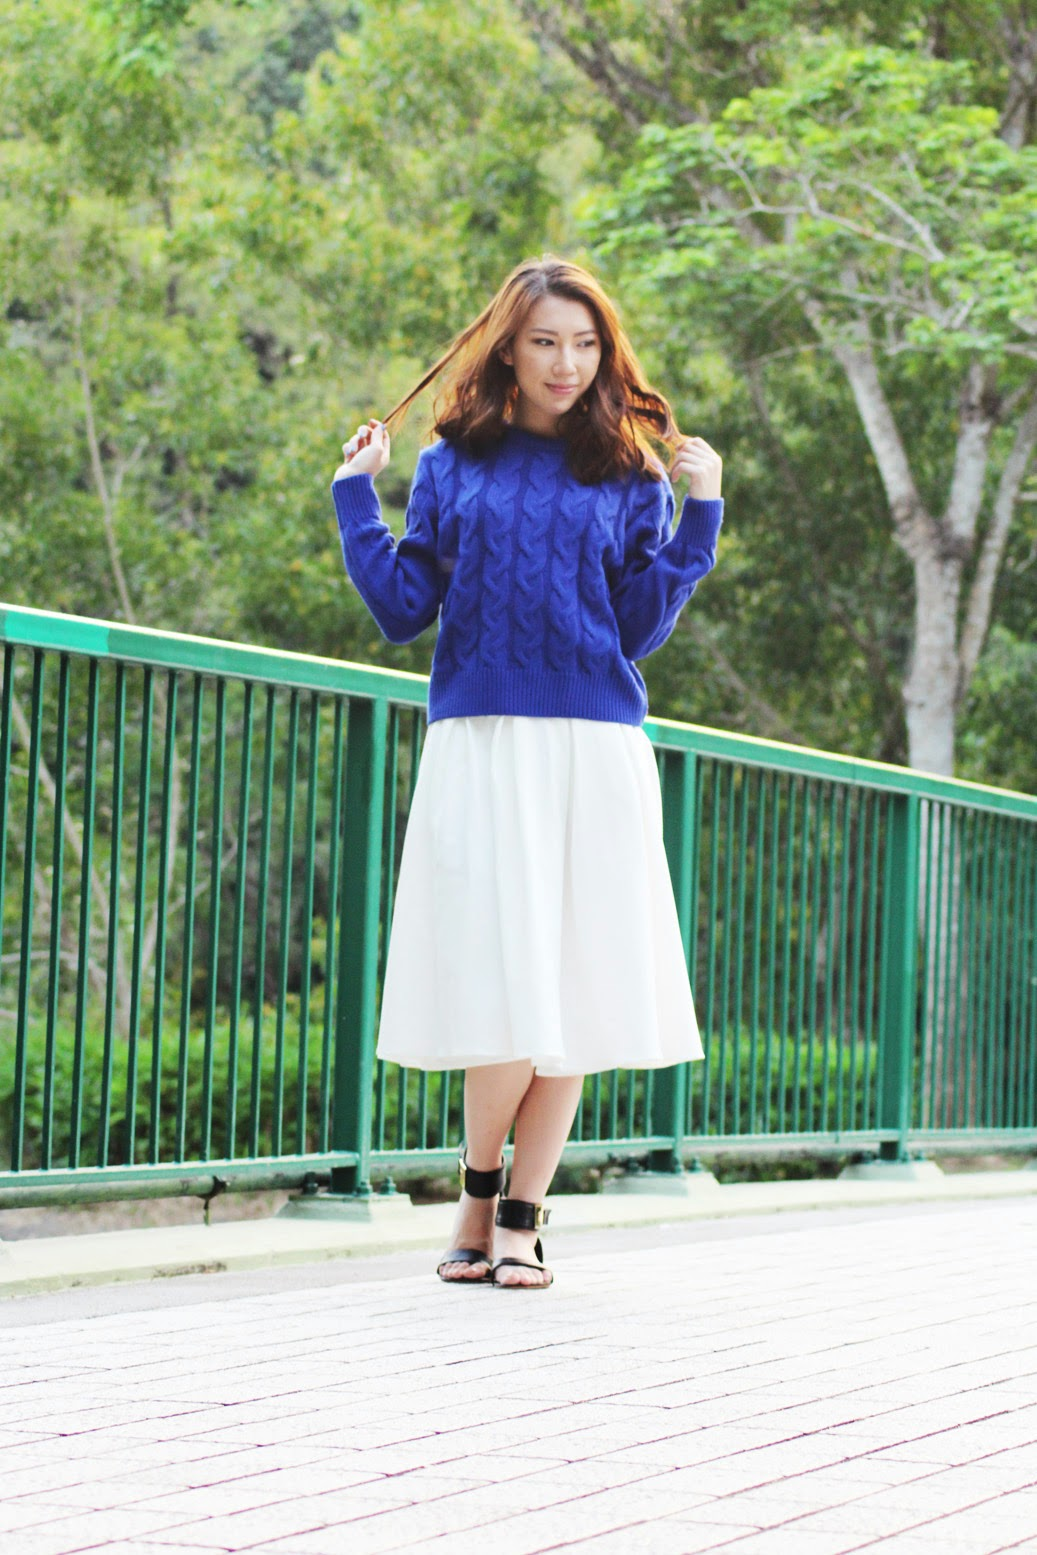 Styling blue sweater with flared white midi skirt and gold buckled sandals